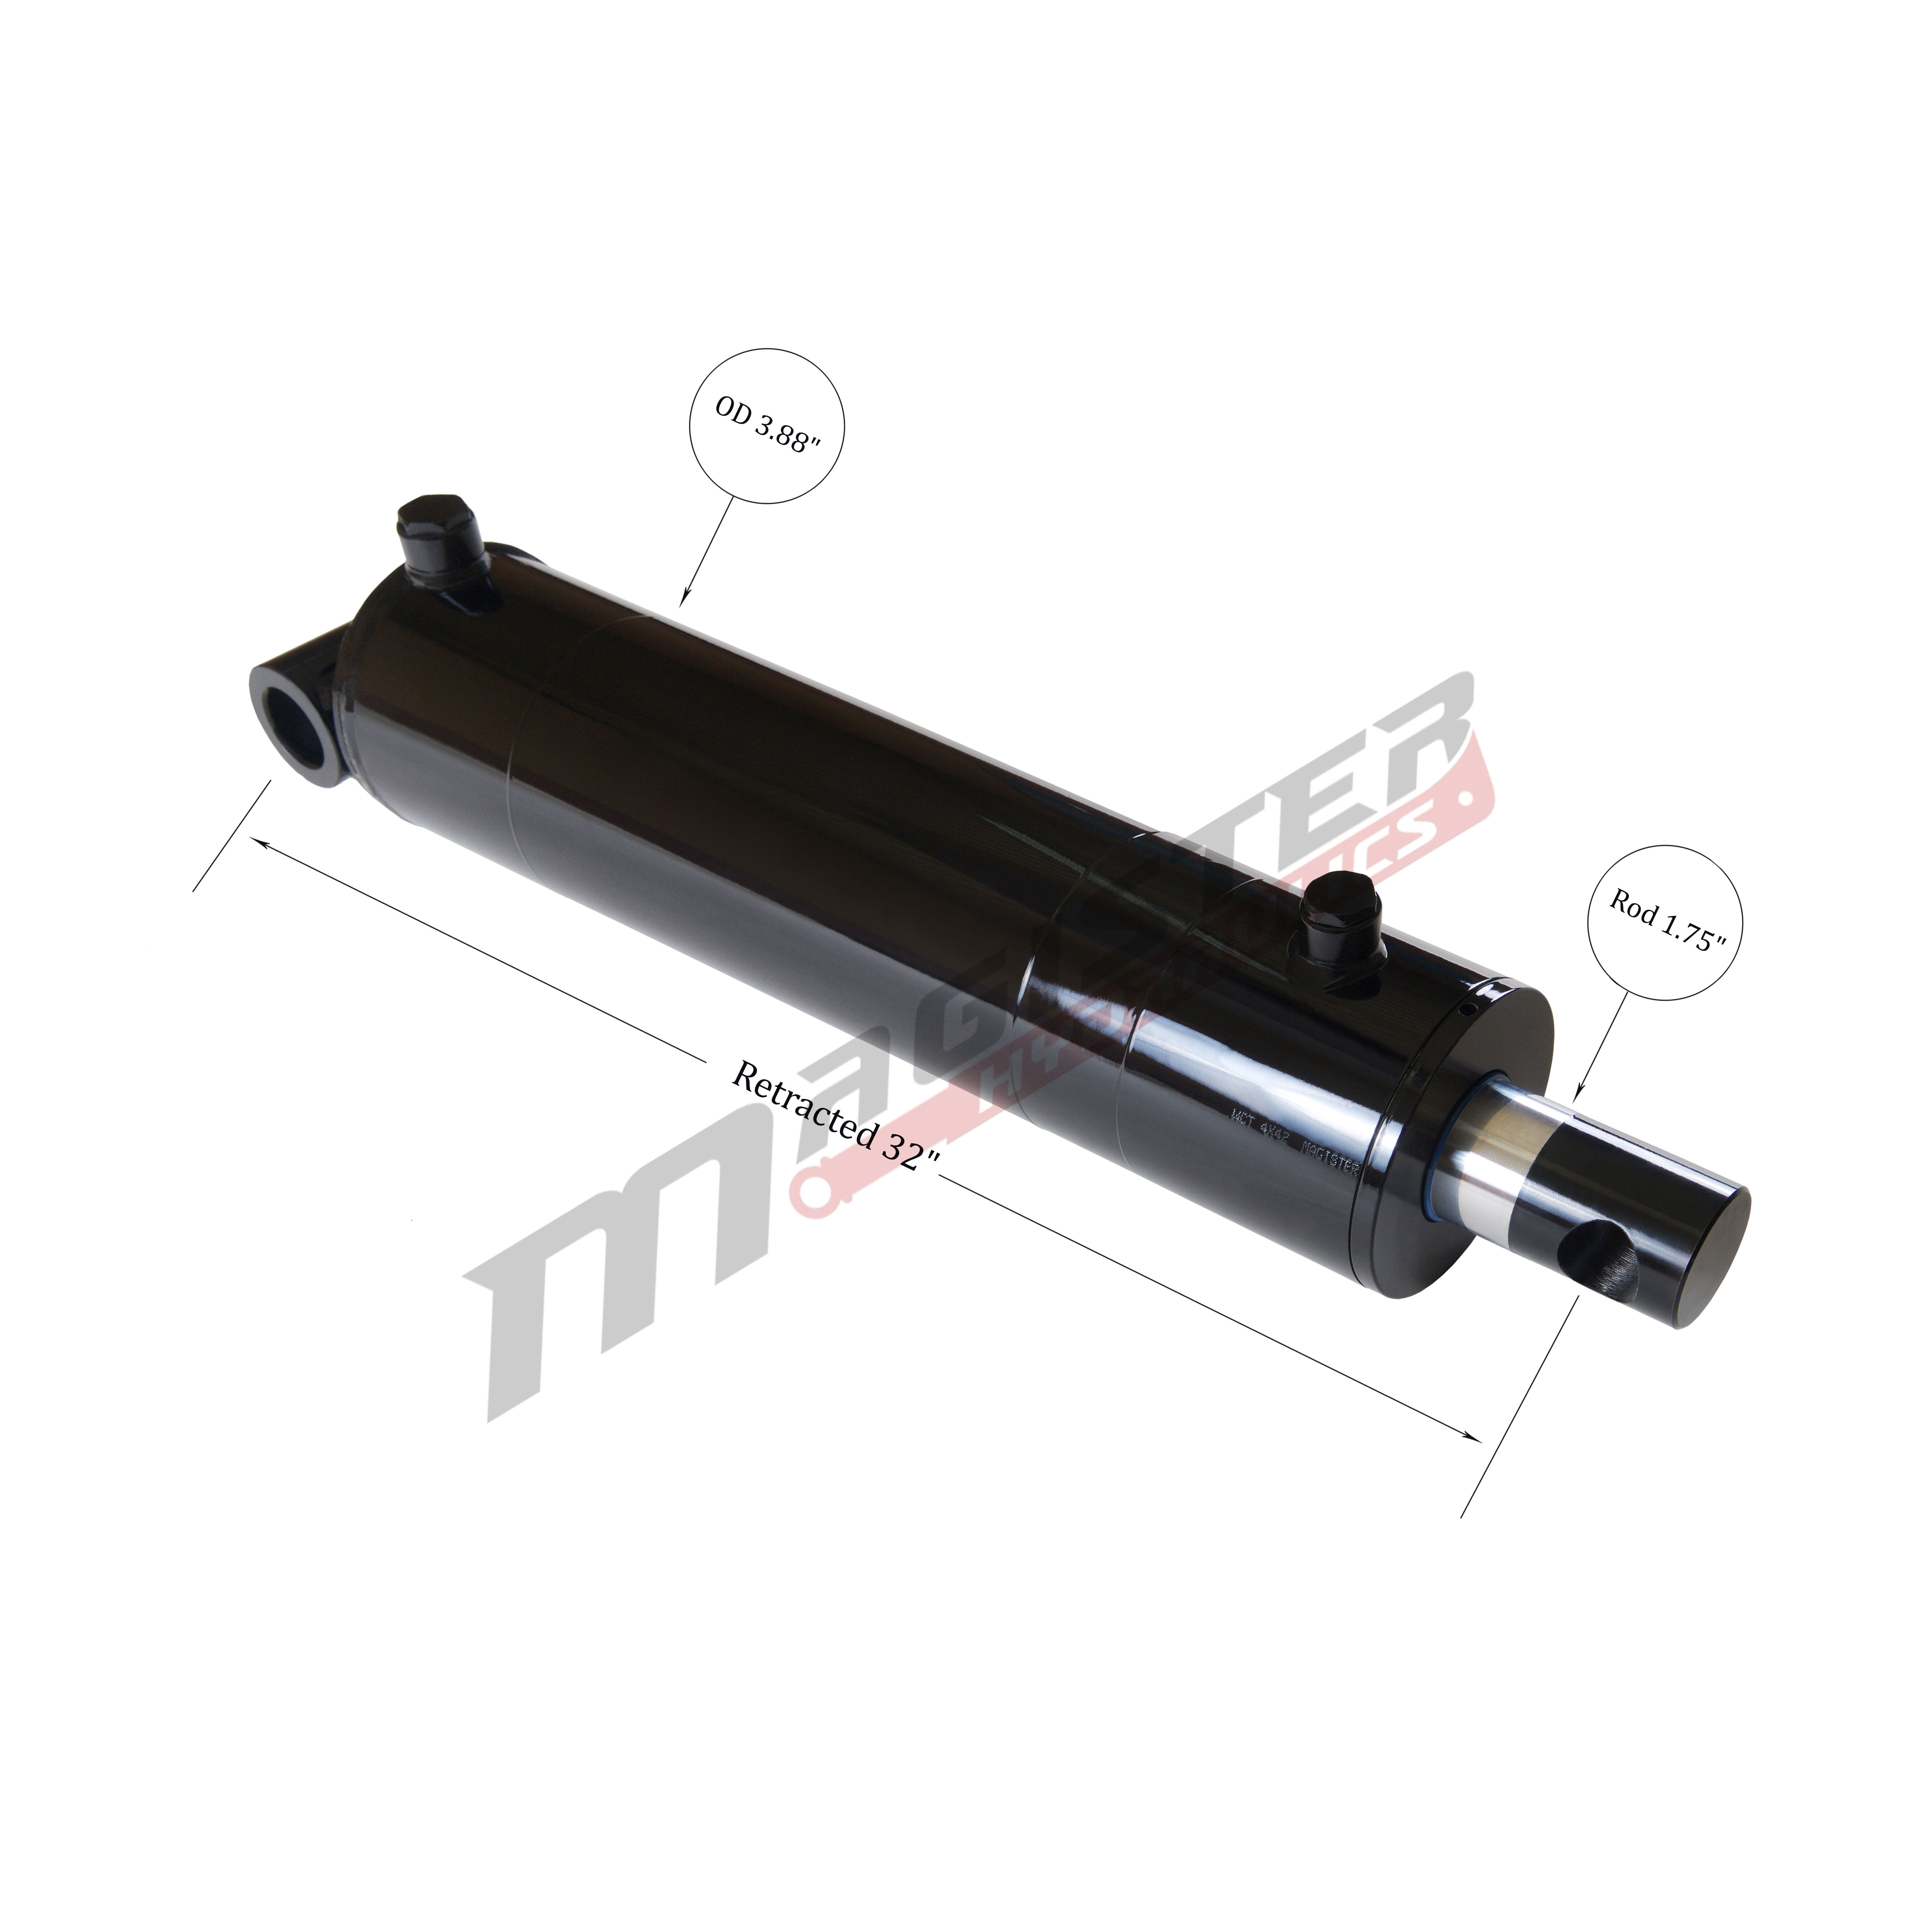 3.5 bore x 24 stroke hydraulic cylinder, welded pin eye double acting cylinder | Magister Hydraulics